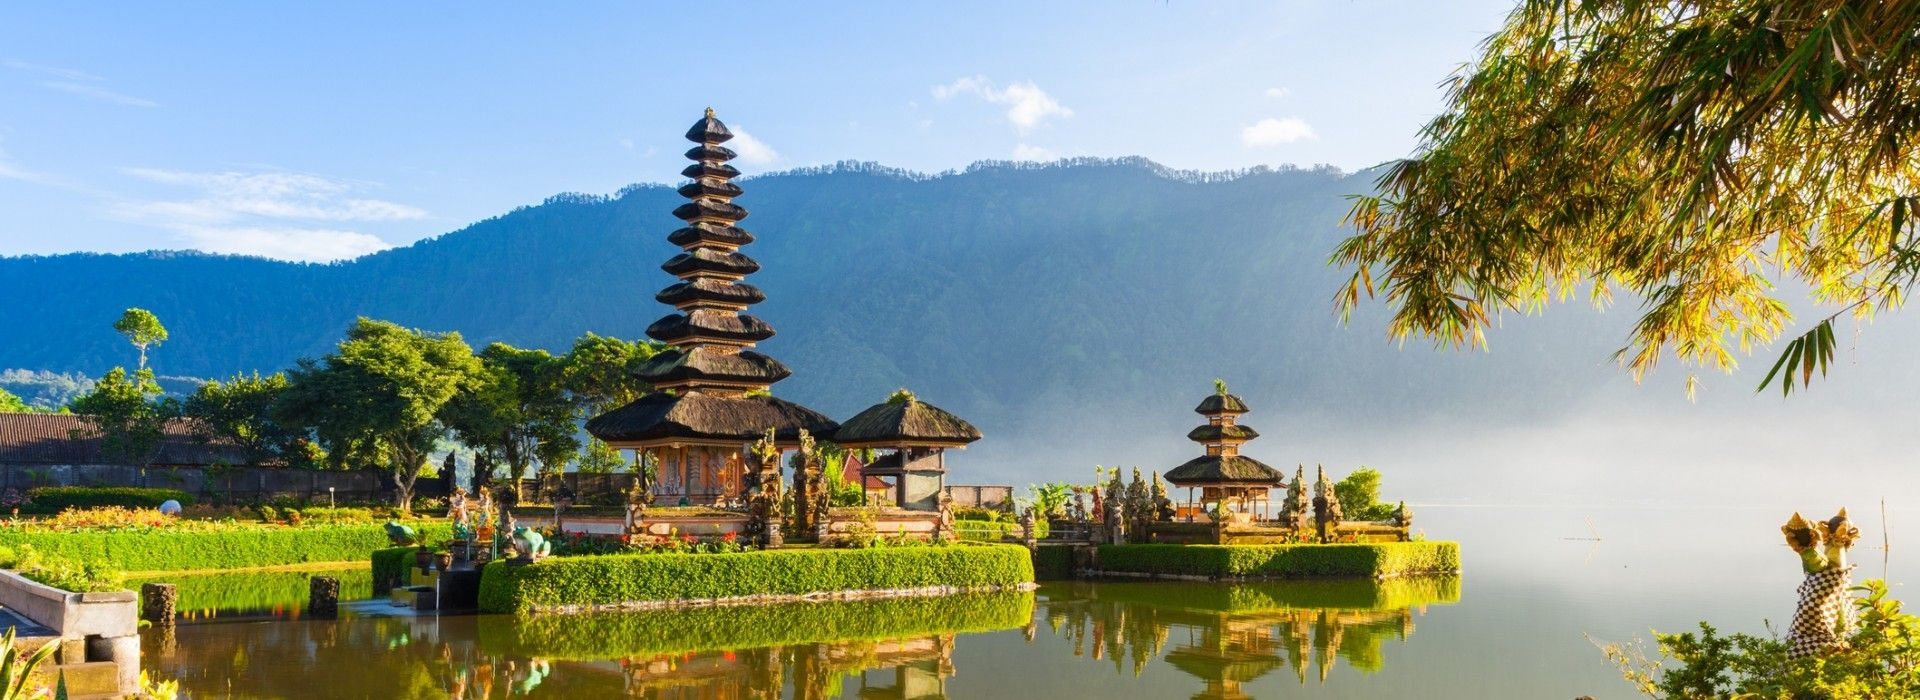 Cultural, religious and historic sites Tours in Denpasar